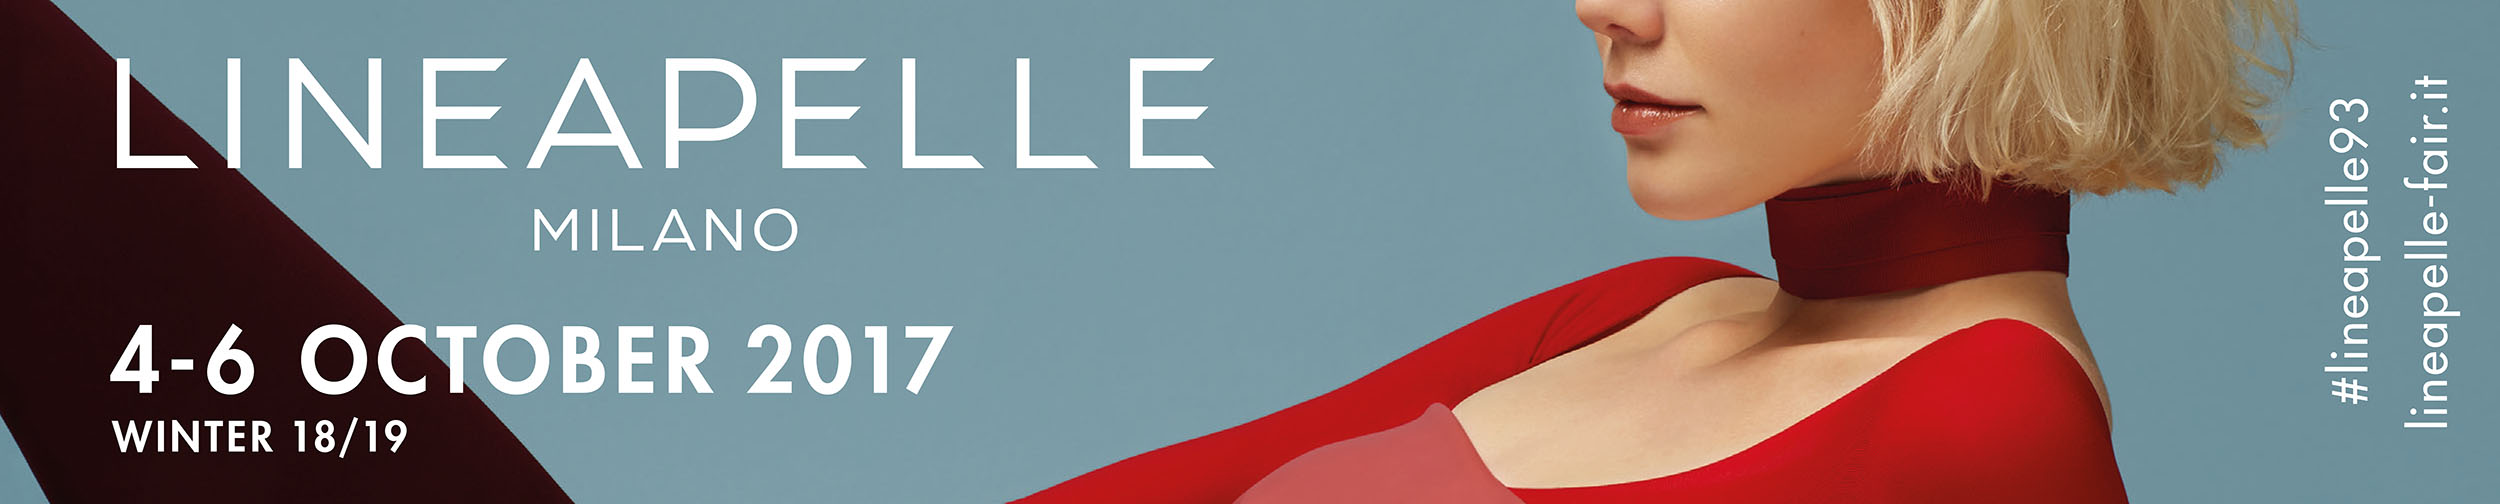 SACE Fashion & Style a Lineapelle Winter 18/19